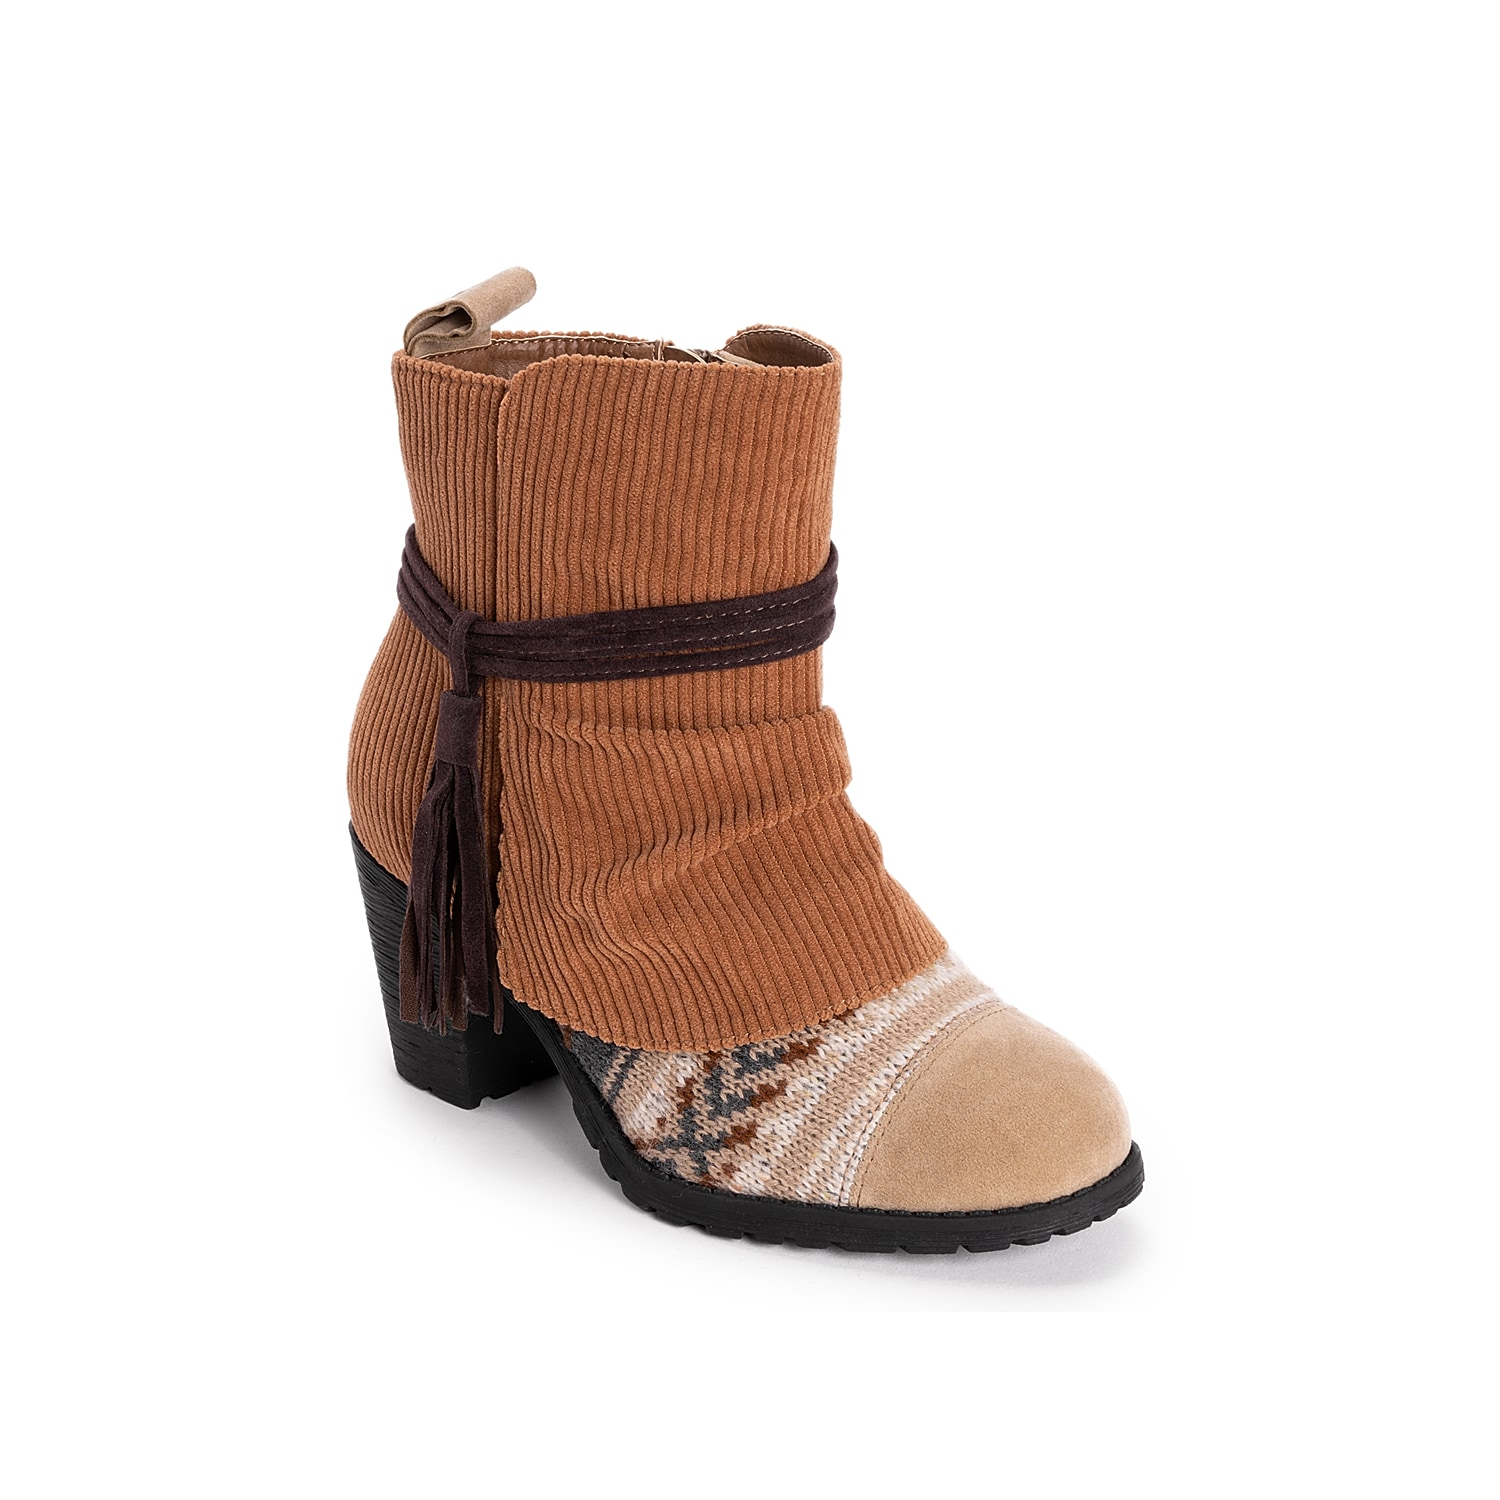 Update cool weather looks with the Celyn bootie from Muk Luks. This ankle boot features mixed material upper with a tassel accent and block heel for added style.Click here for Boot Measuring Guide.